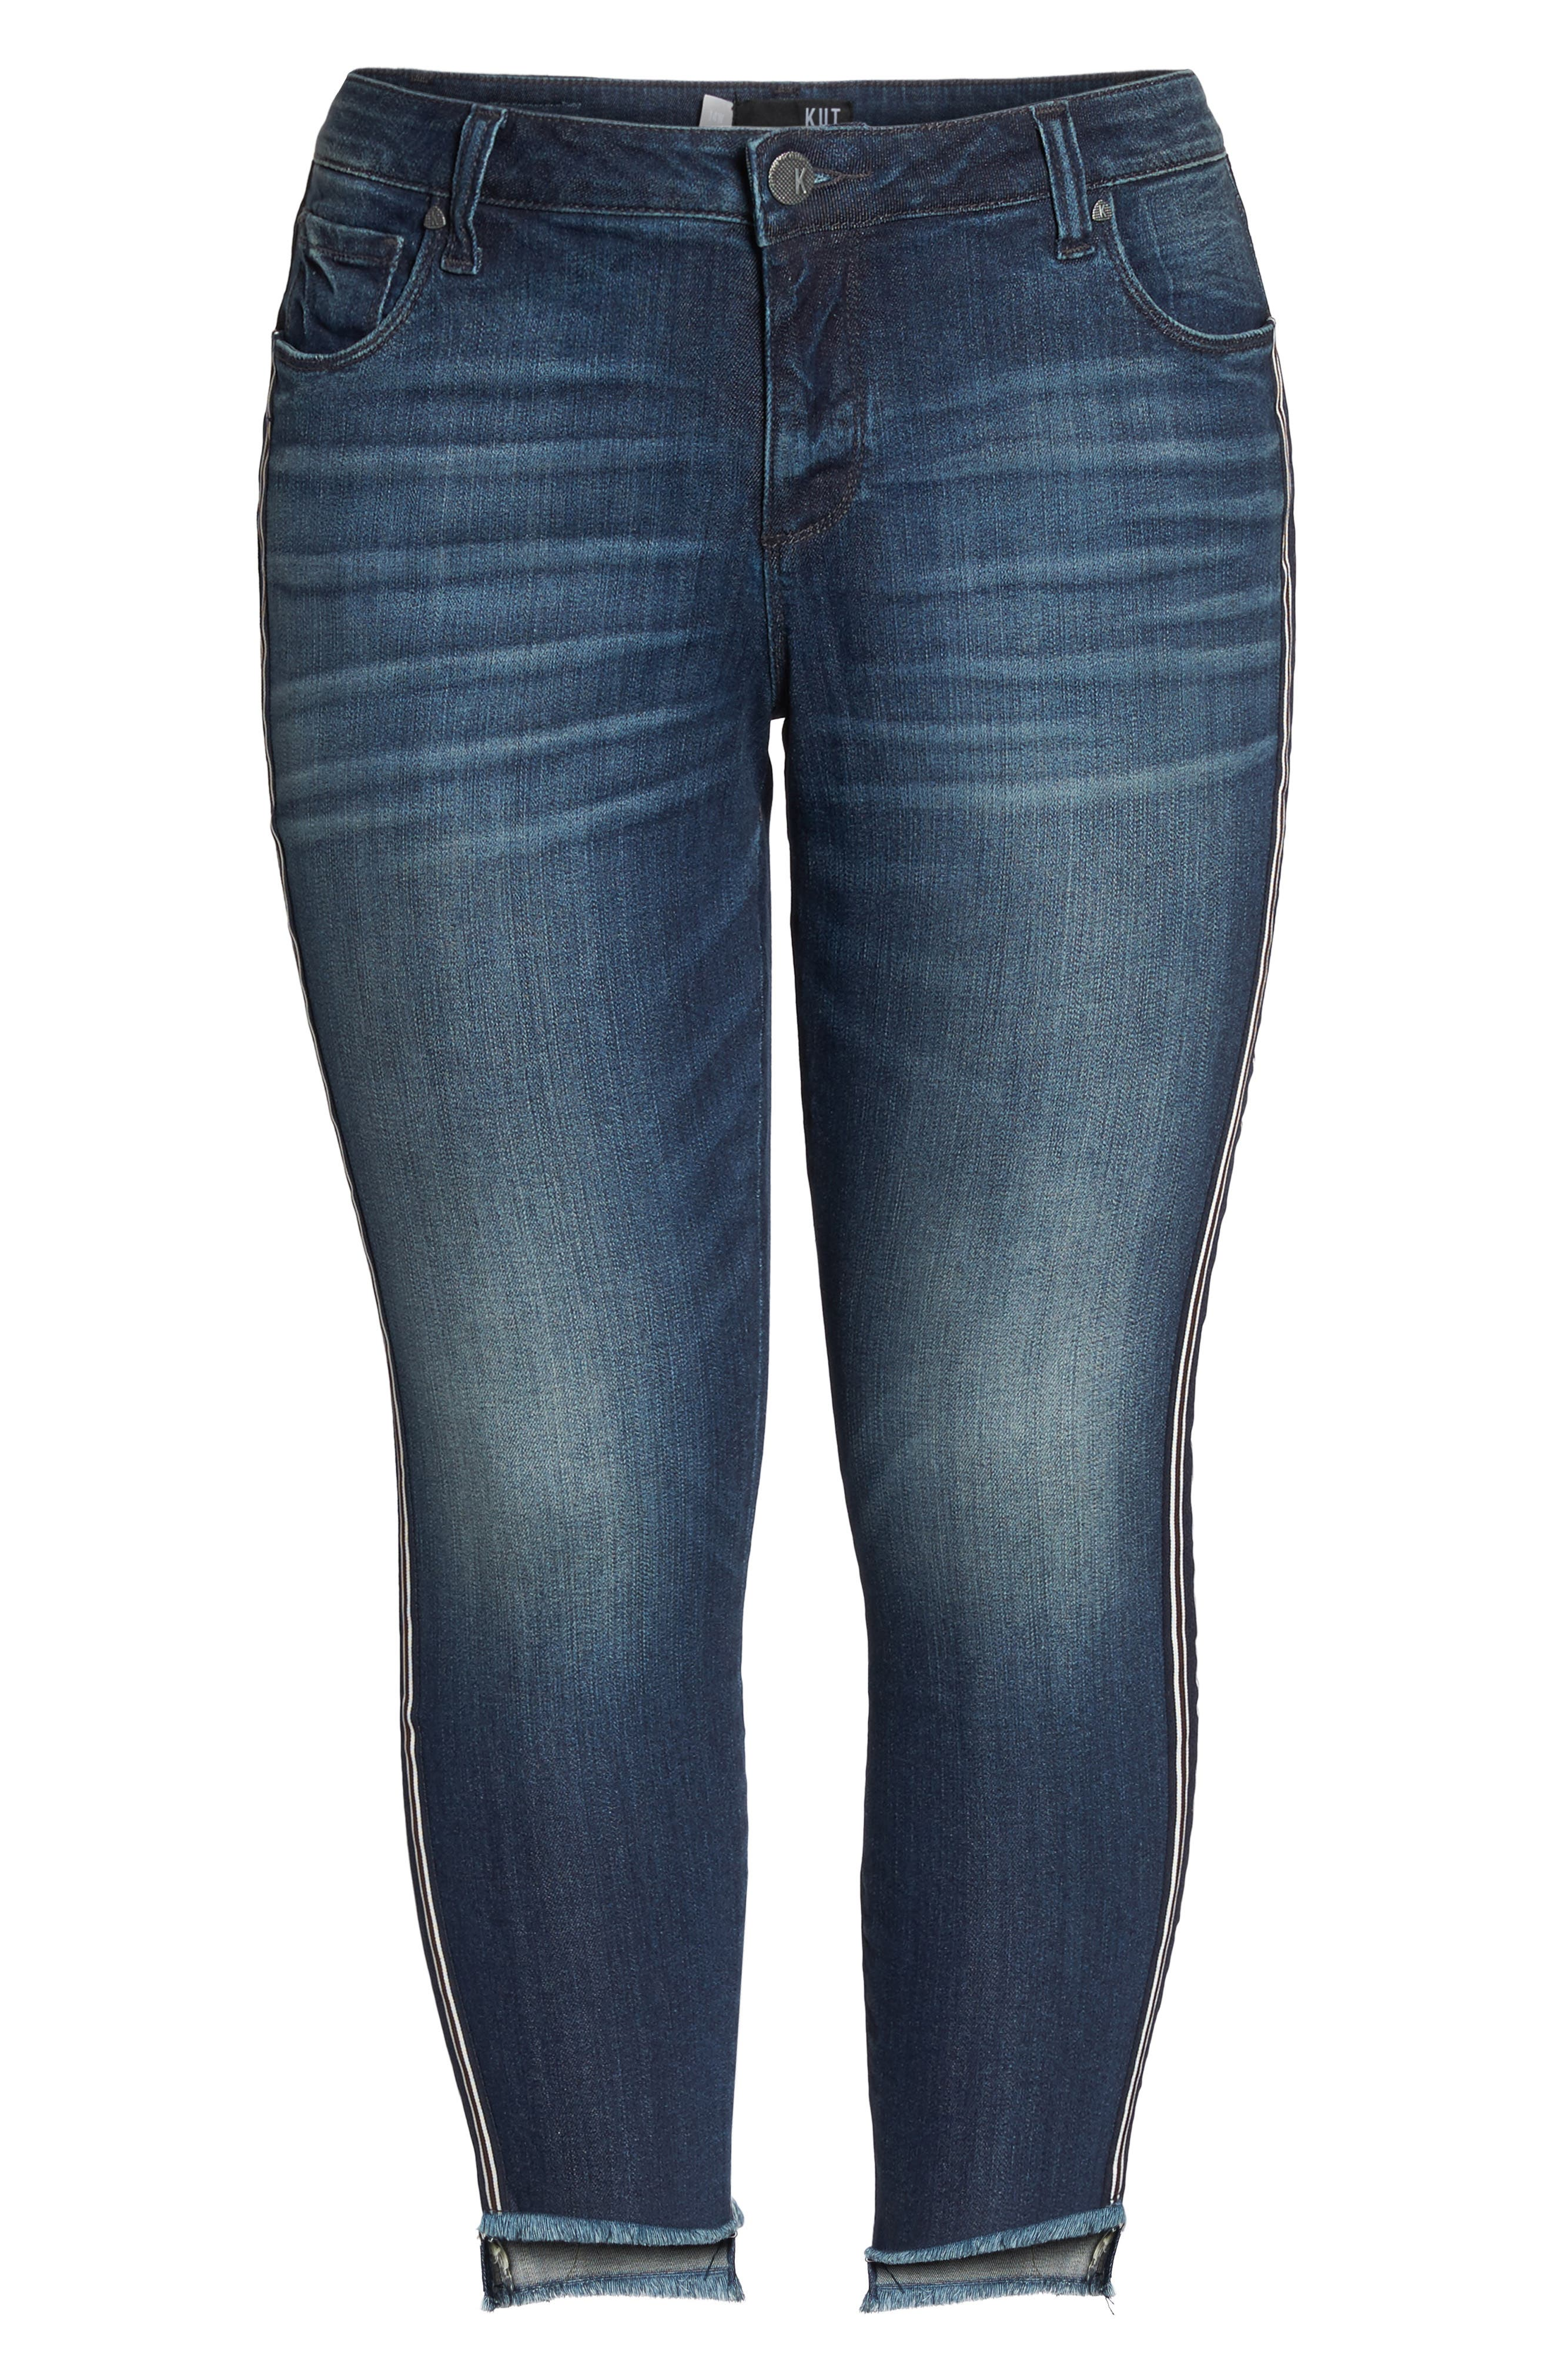 Reese Side Stripe Uneven Ankle Jeans,                             Alternate thumbnail 6, color,                             ANALYZED